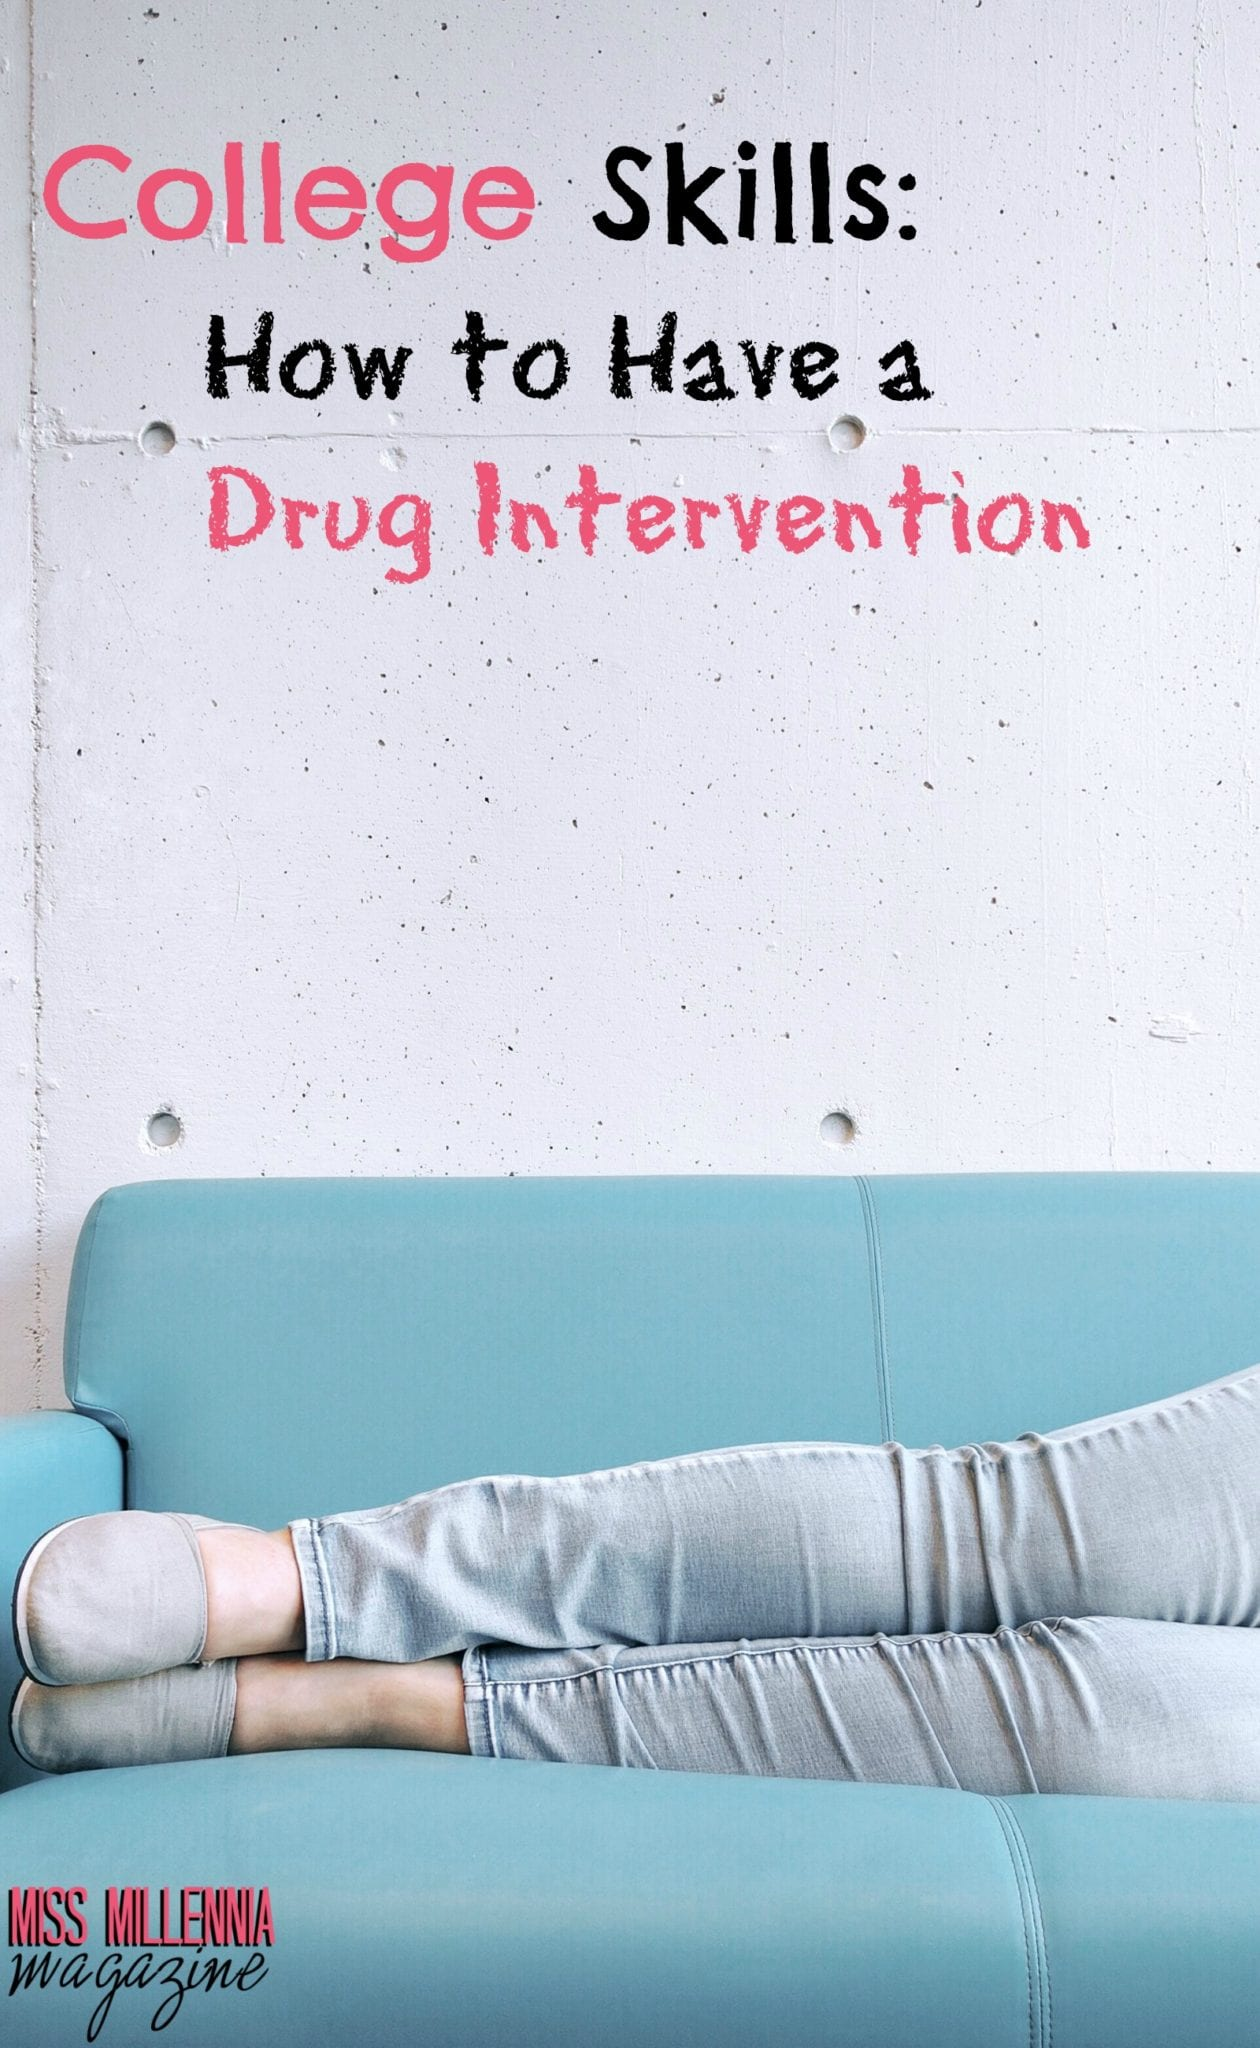 college-skills-how-to-have-a-drug-intervention